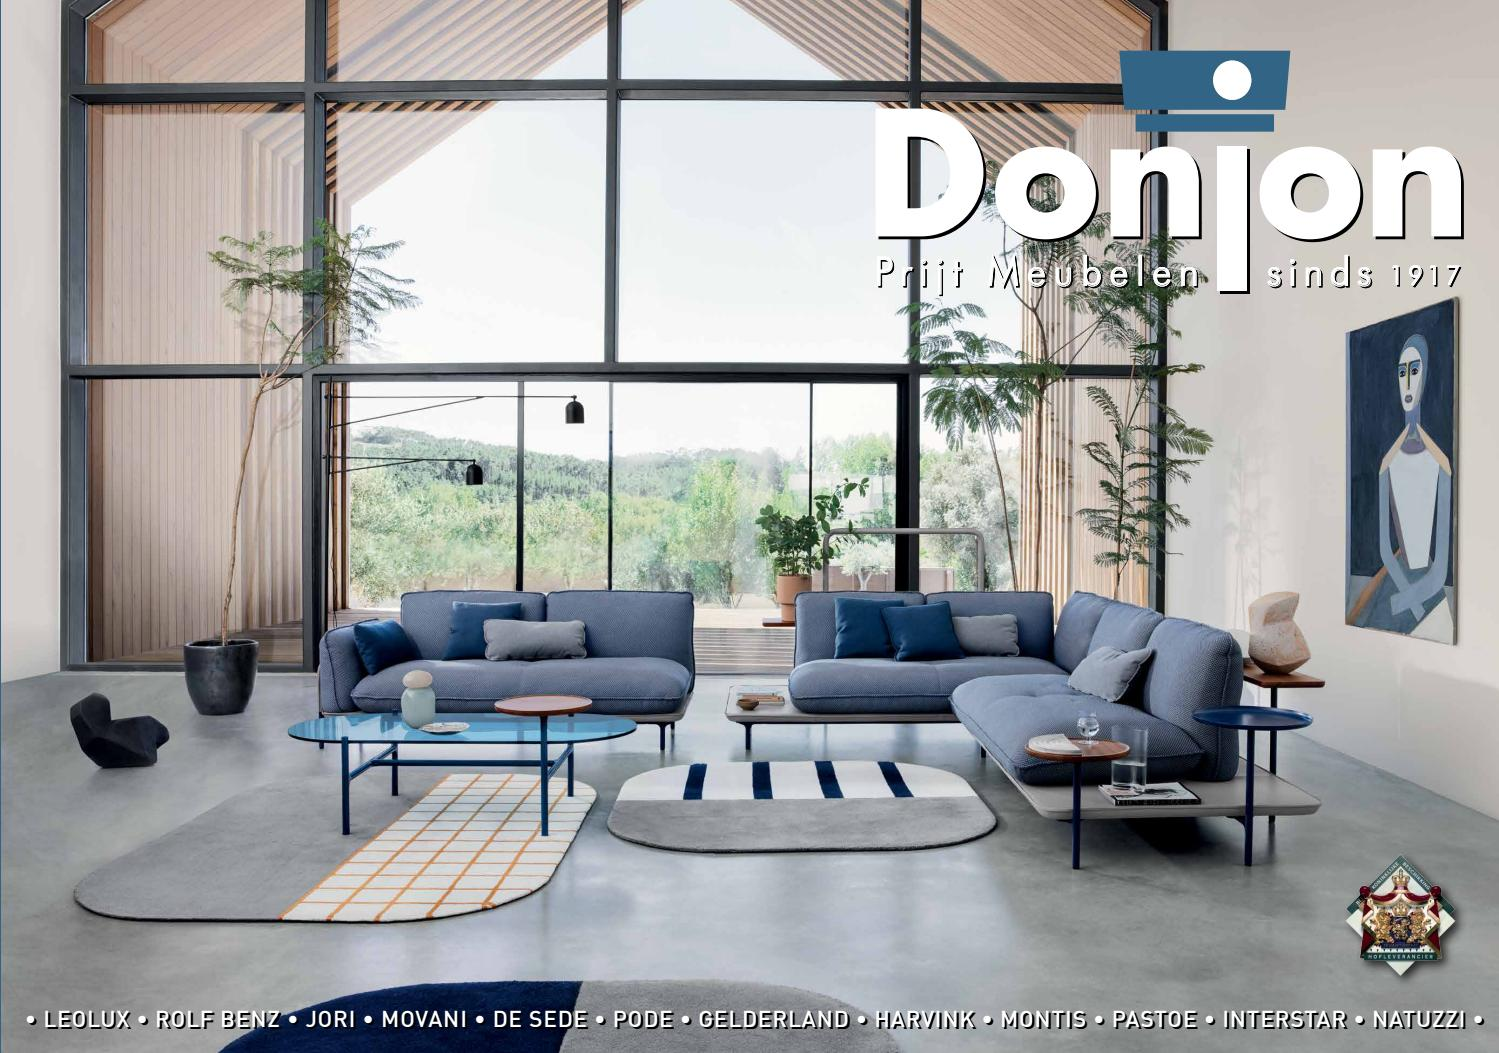 Natuzzi Wit Leren Bank.De Donjon Collectieboek 2020 By De Donjon Issuu